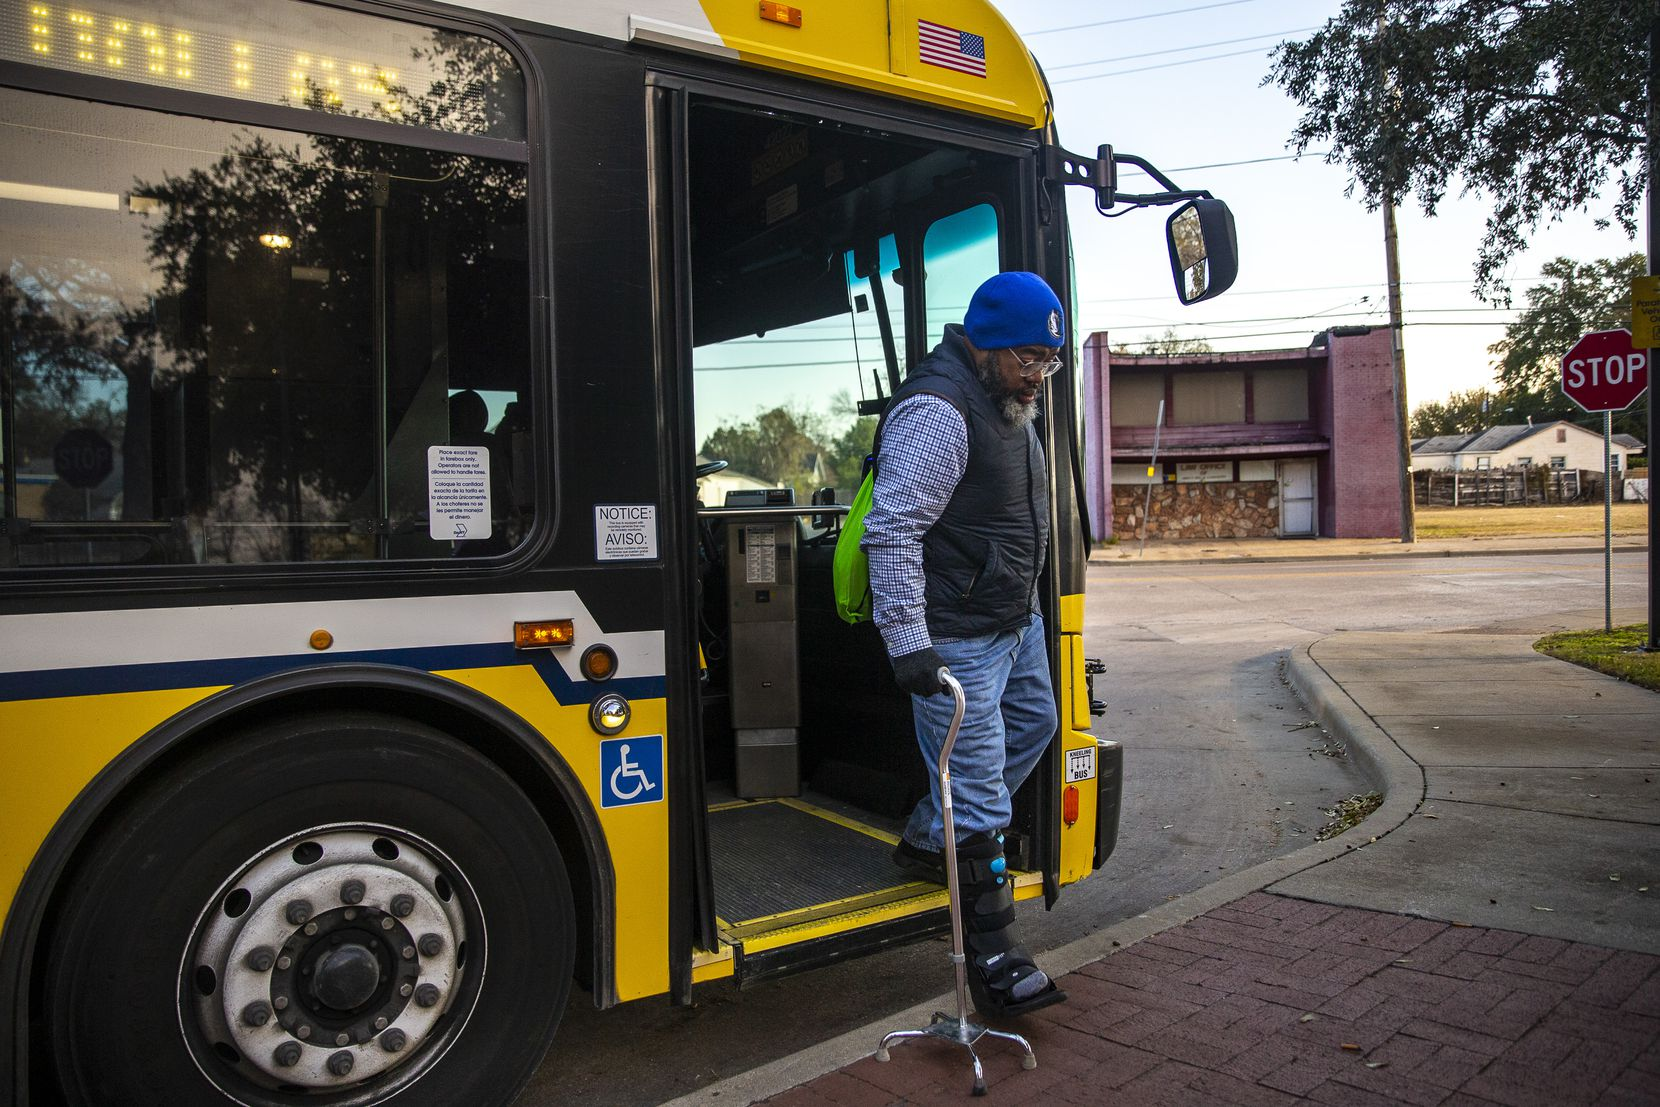 Randy eased himself off one of several DART buses he took to get to an appointment at the Social Security Administration building in Fair Park in Dallas on Nov. 14, 2019. After a heart attack and stroke left him disabled earlier that year, he had to navigate a tangled web of social services to secure housing and medical needs.